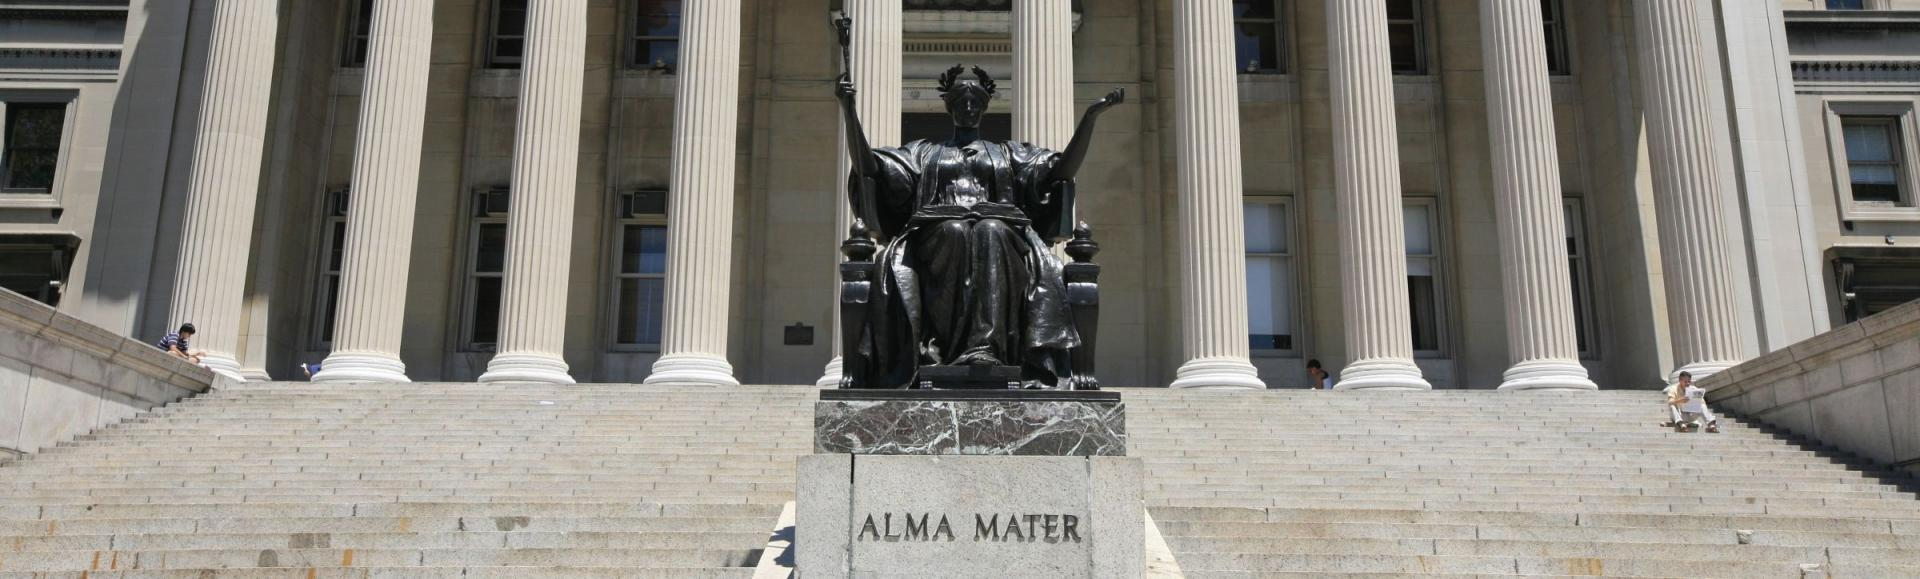 Alma Meter in front of Low Library